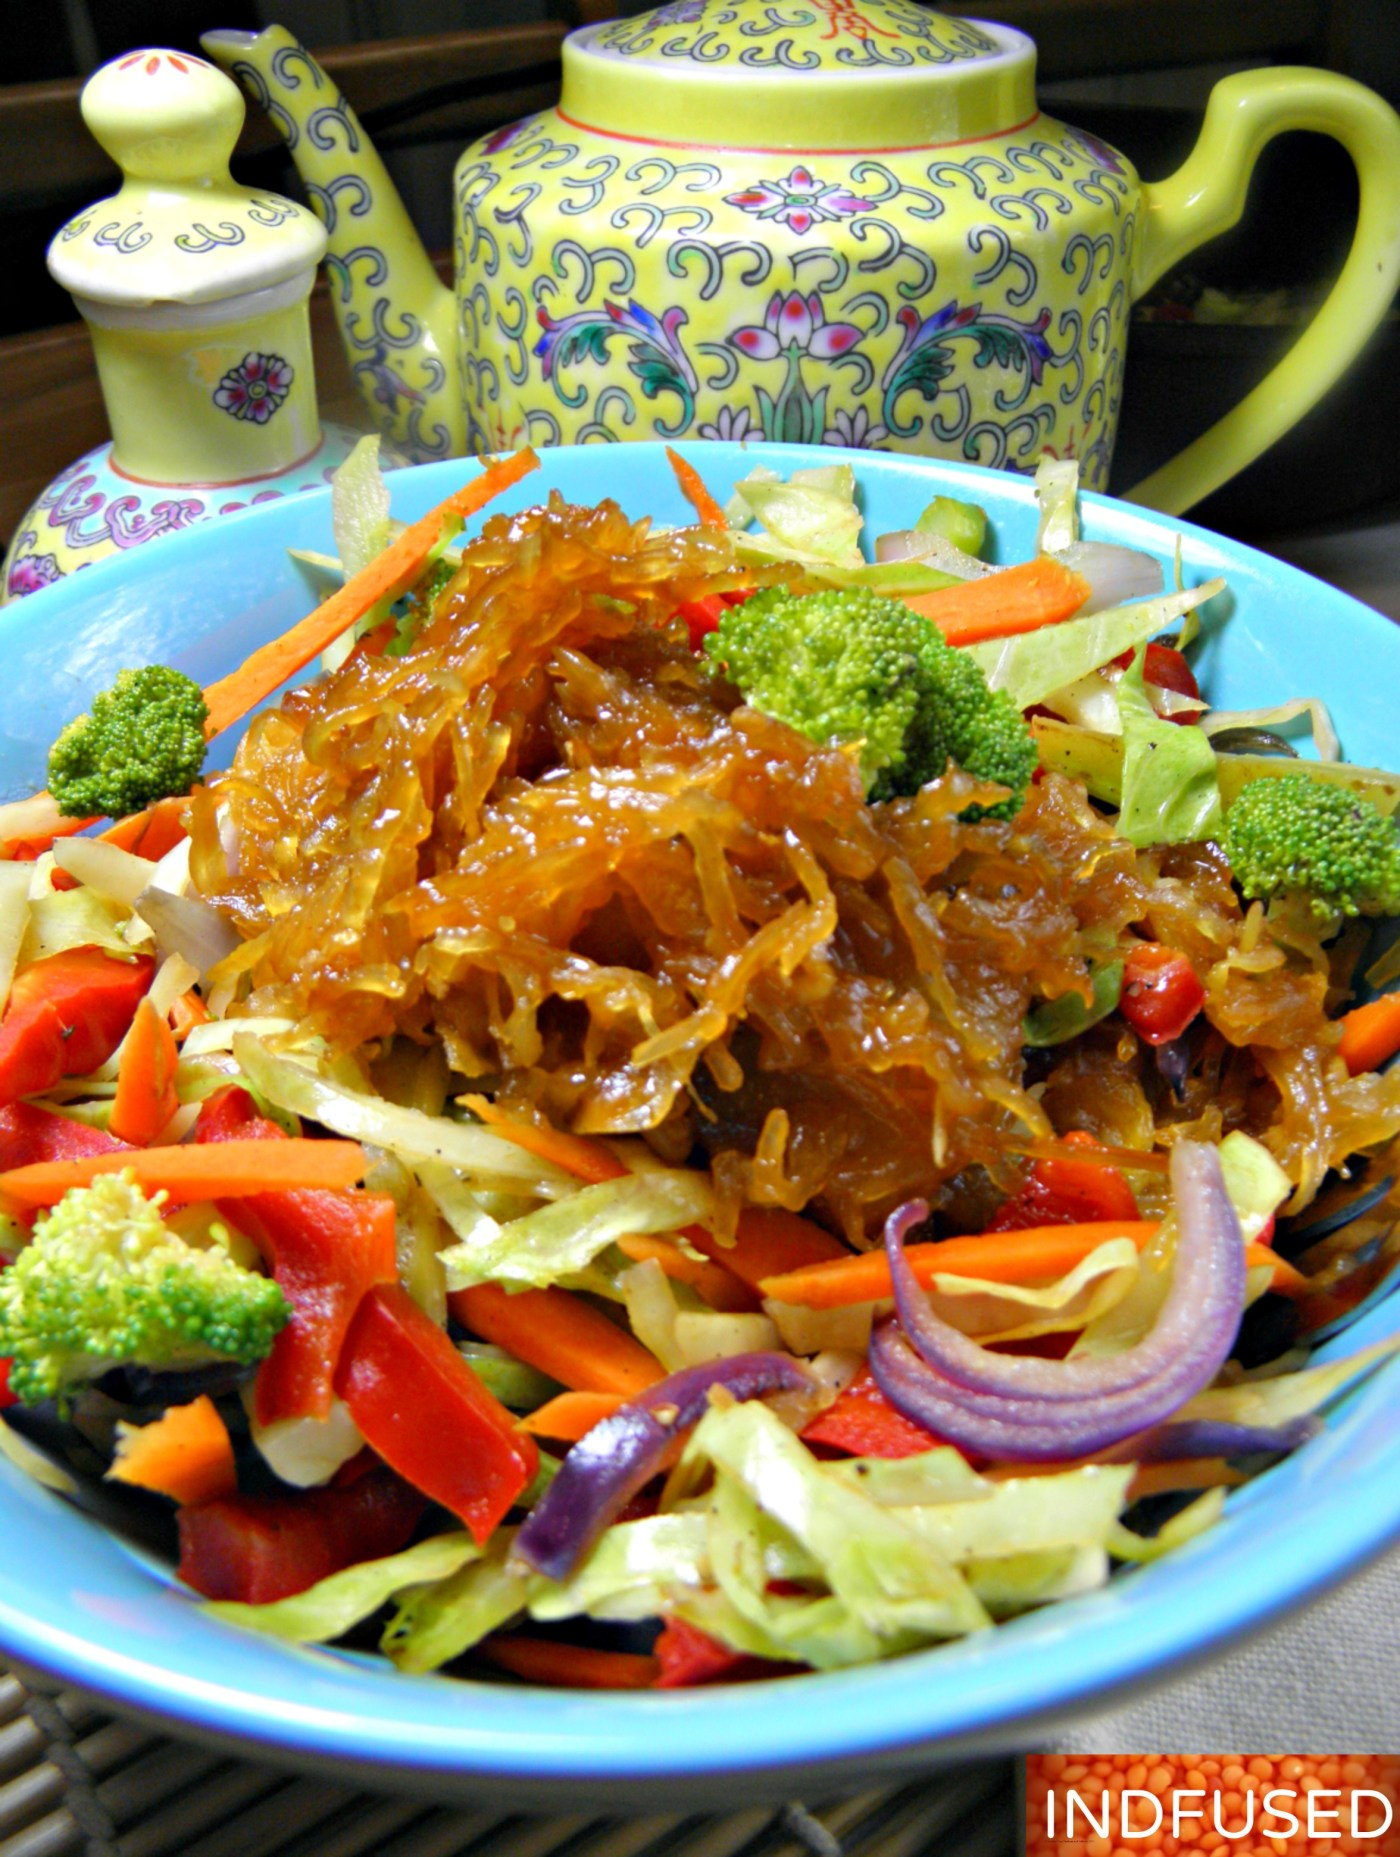 #Gluten free,#figurefriendly,#Spaghetti #squash #noodles with #fingerlicking good #Sriracha #hoisin #honey #sauce